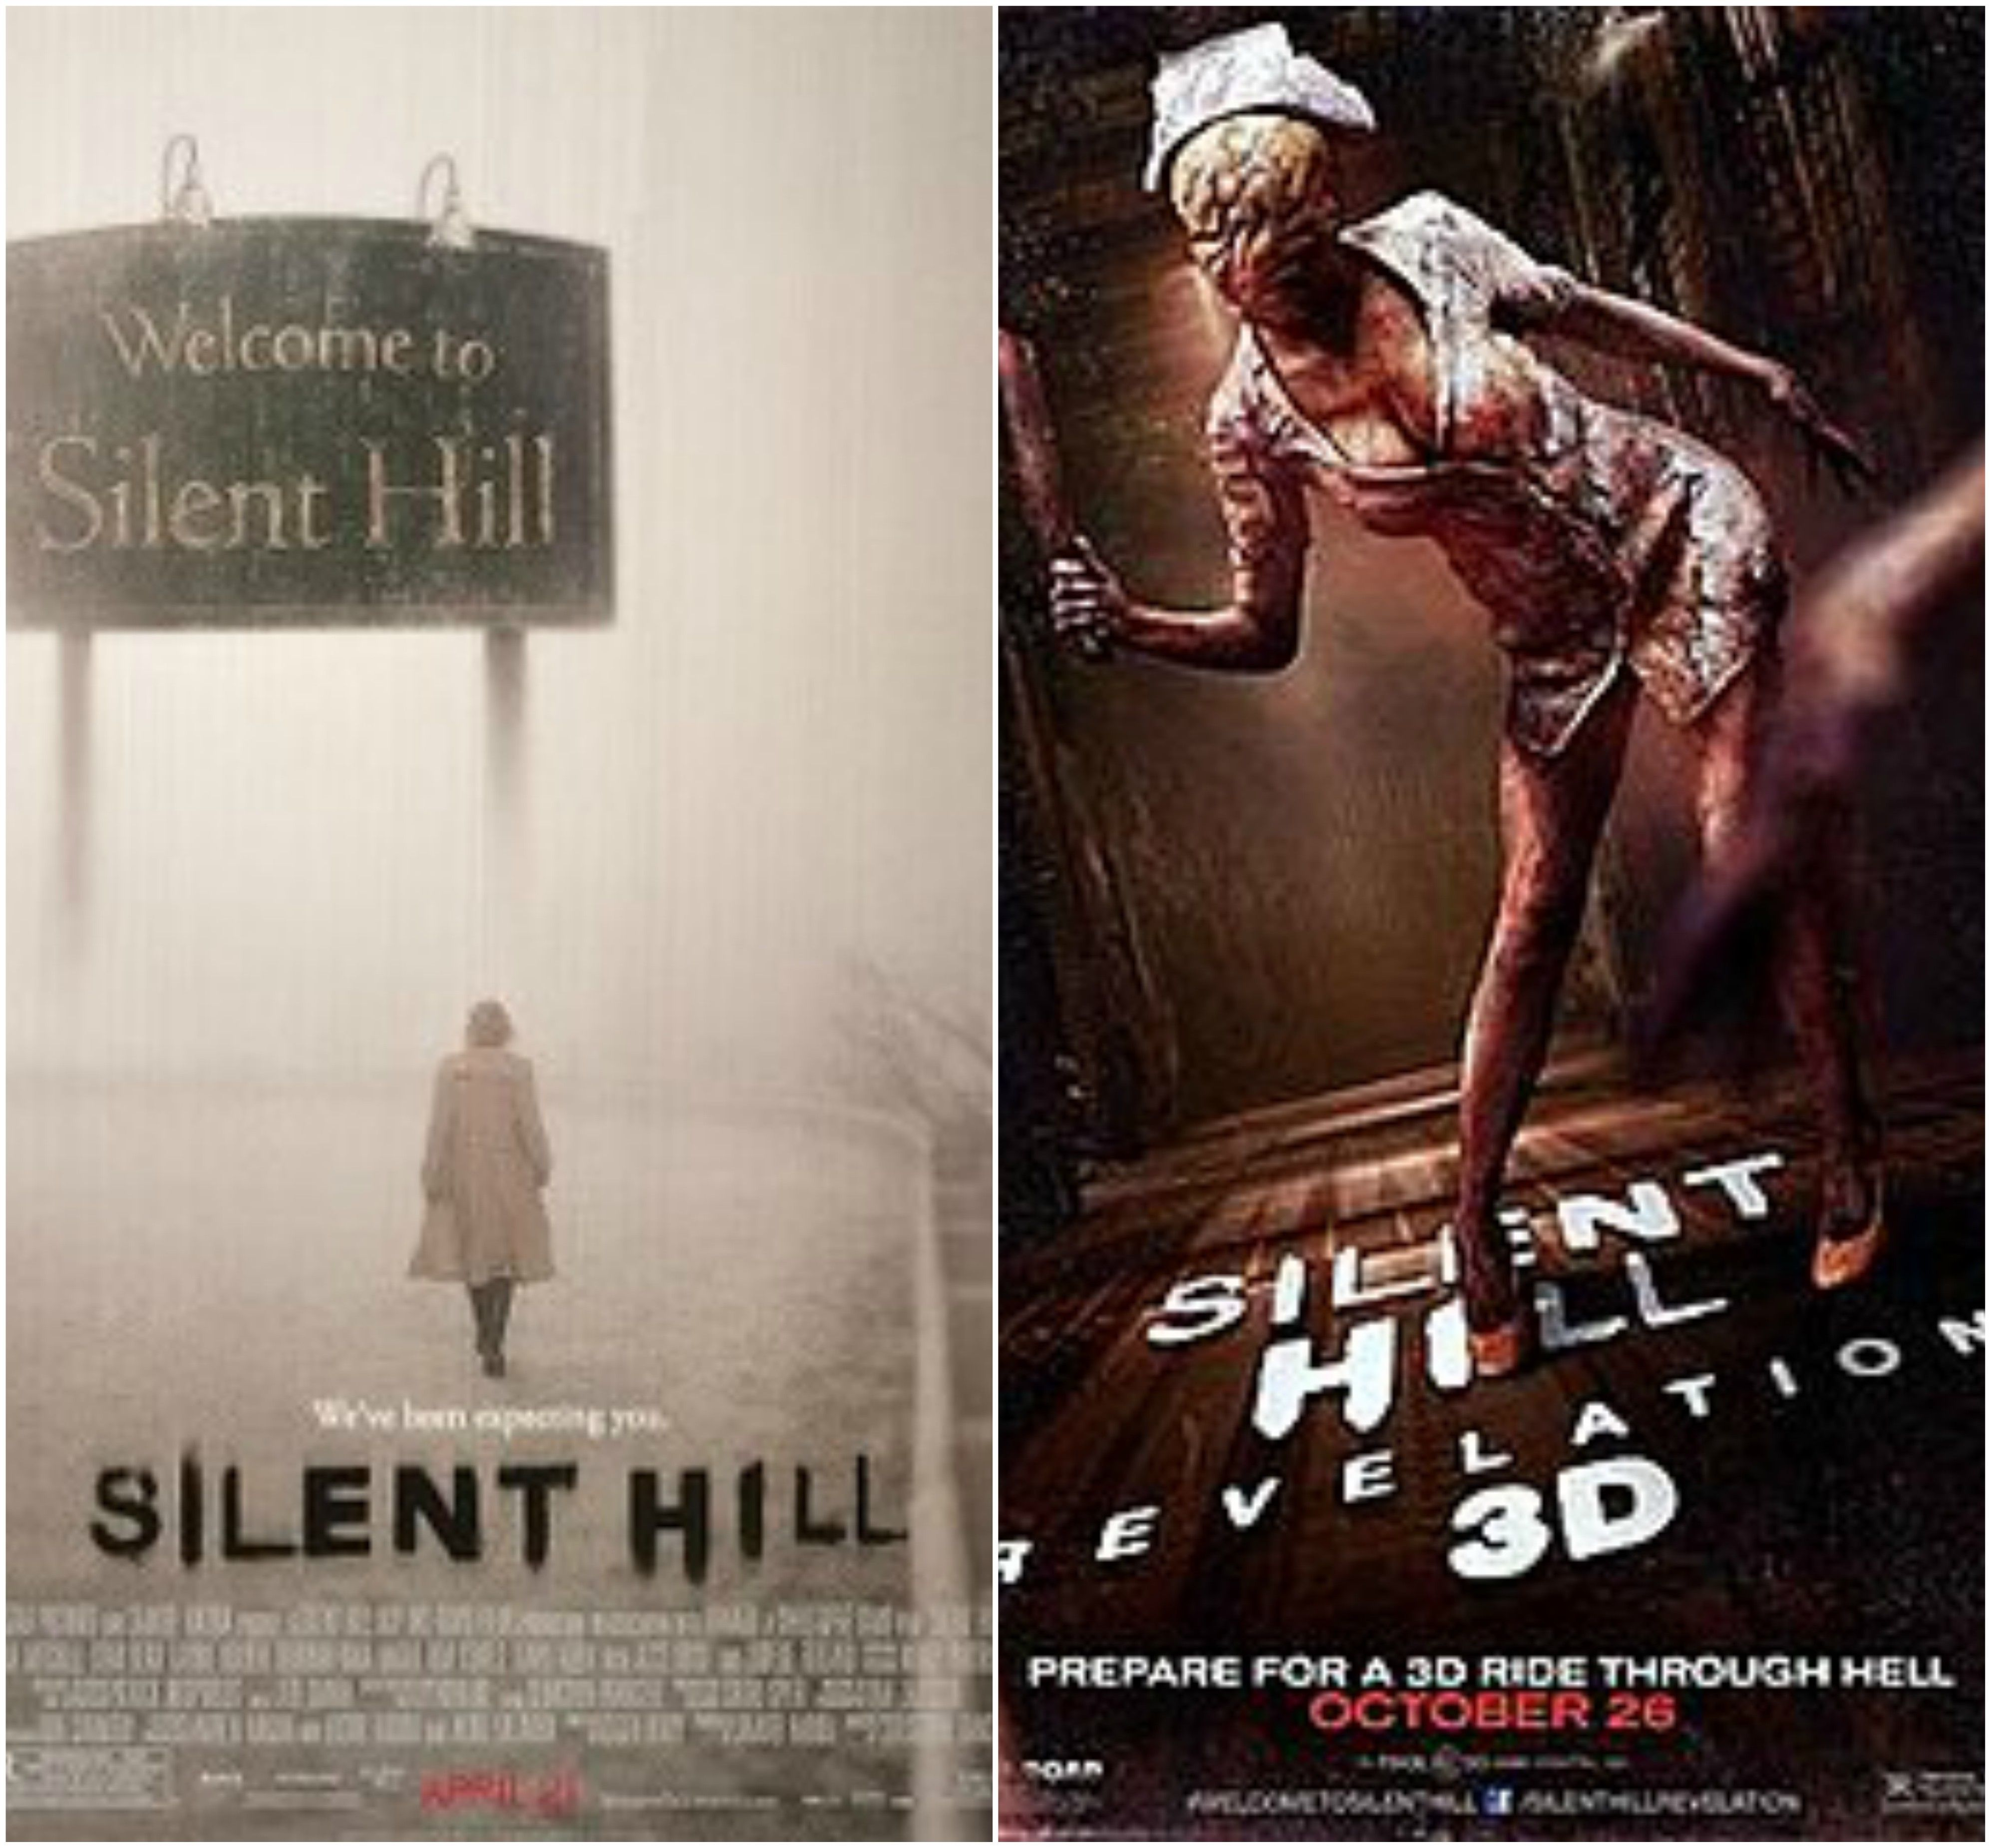 Pin By Mauro Sanchez Gomez On Hill Silence Silent Hill Silent Movie Posters